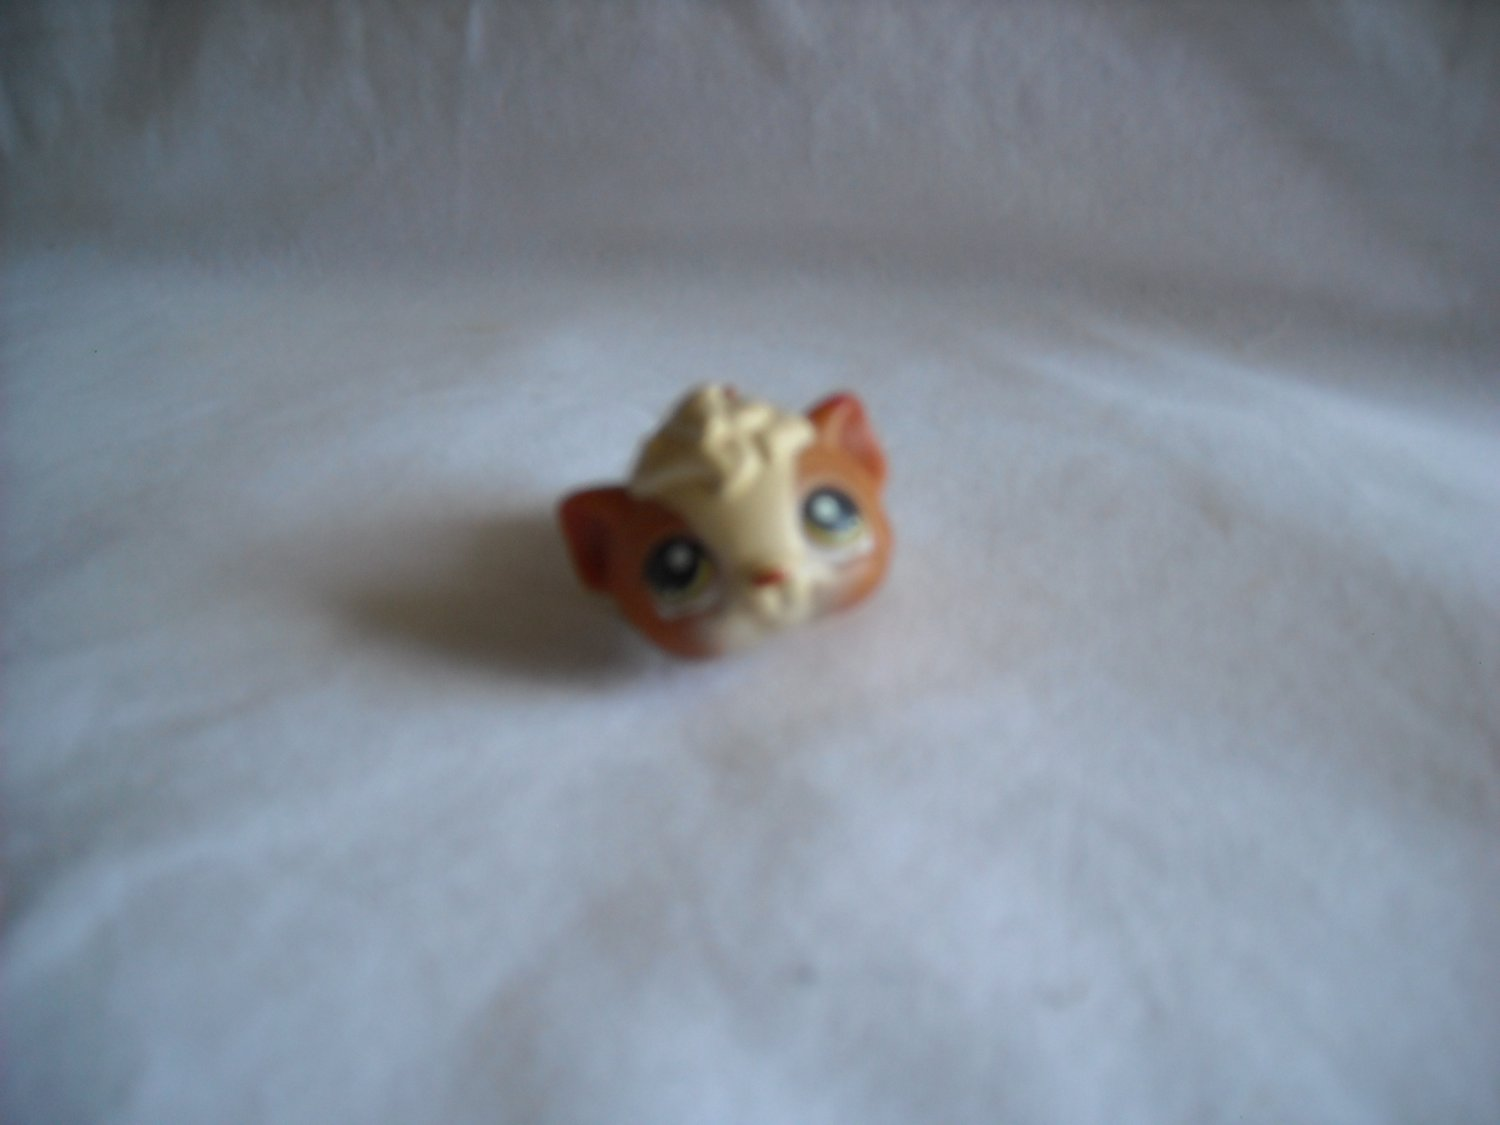 2005 Hasbro Littlest Pet Shop Retired Guinea Pig #213 Brown and Cream with Green Eyes (TB1)